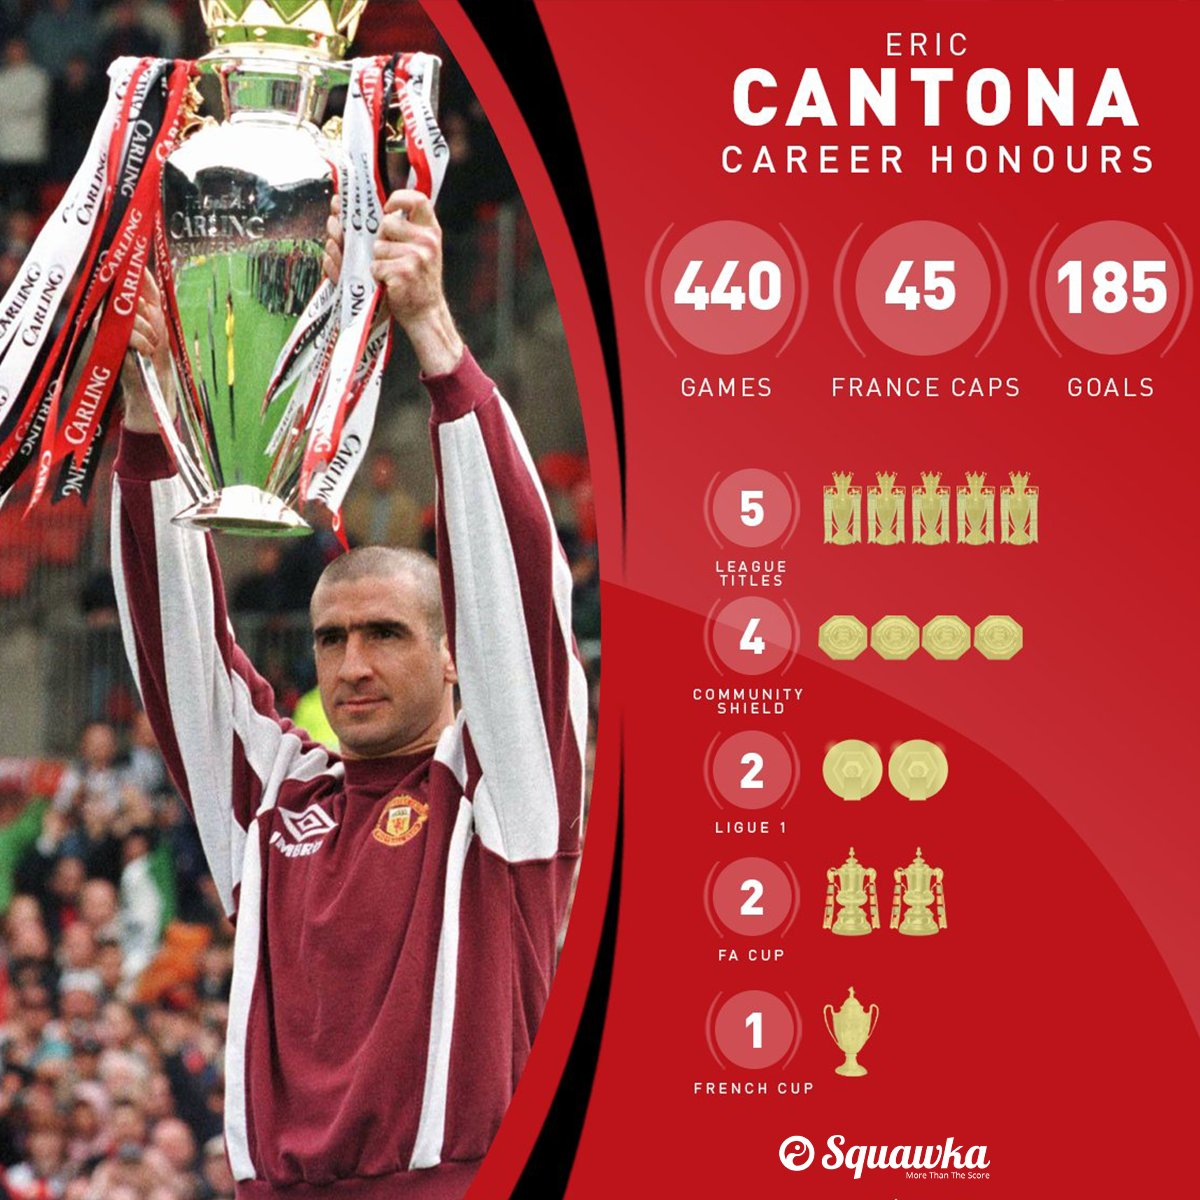 Eric daniel pierre cantona is a former french international football player who used to feature prominently during the 1980s and 1990s. Squawka Football On Twitter Happy 54th Birthday Eric Cantona He S One Of Four Players With 15 Goals 15 Assists In A Single Premier League Season King Eric Https T Co Qevkekbhax